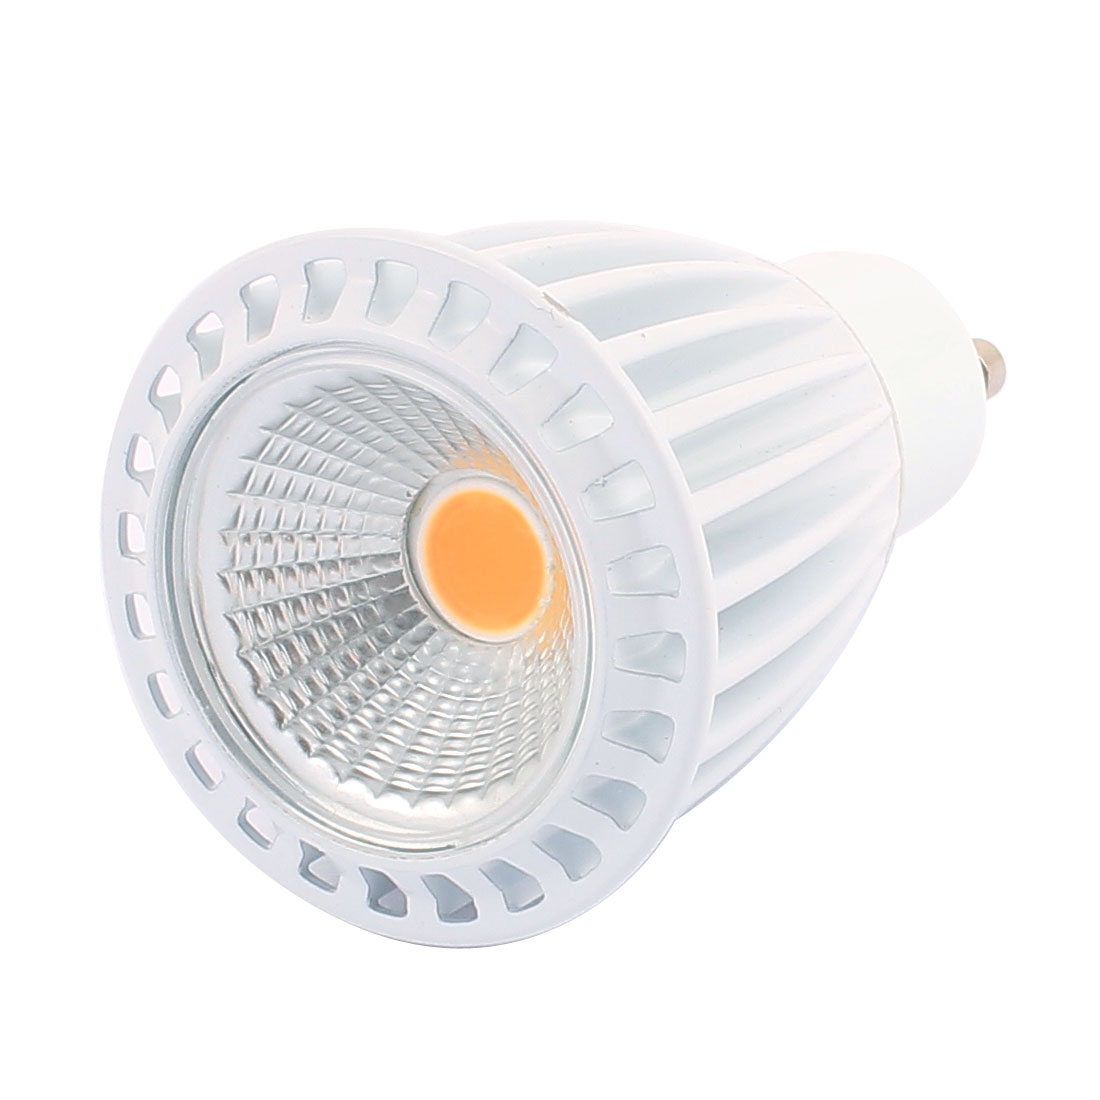 AC85-265V 7W GU10 COB LED 560LM Spotlight Lamp Bulb Downlight Warm White